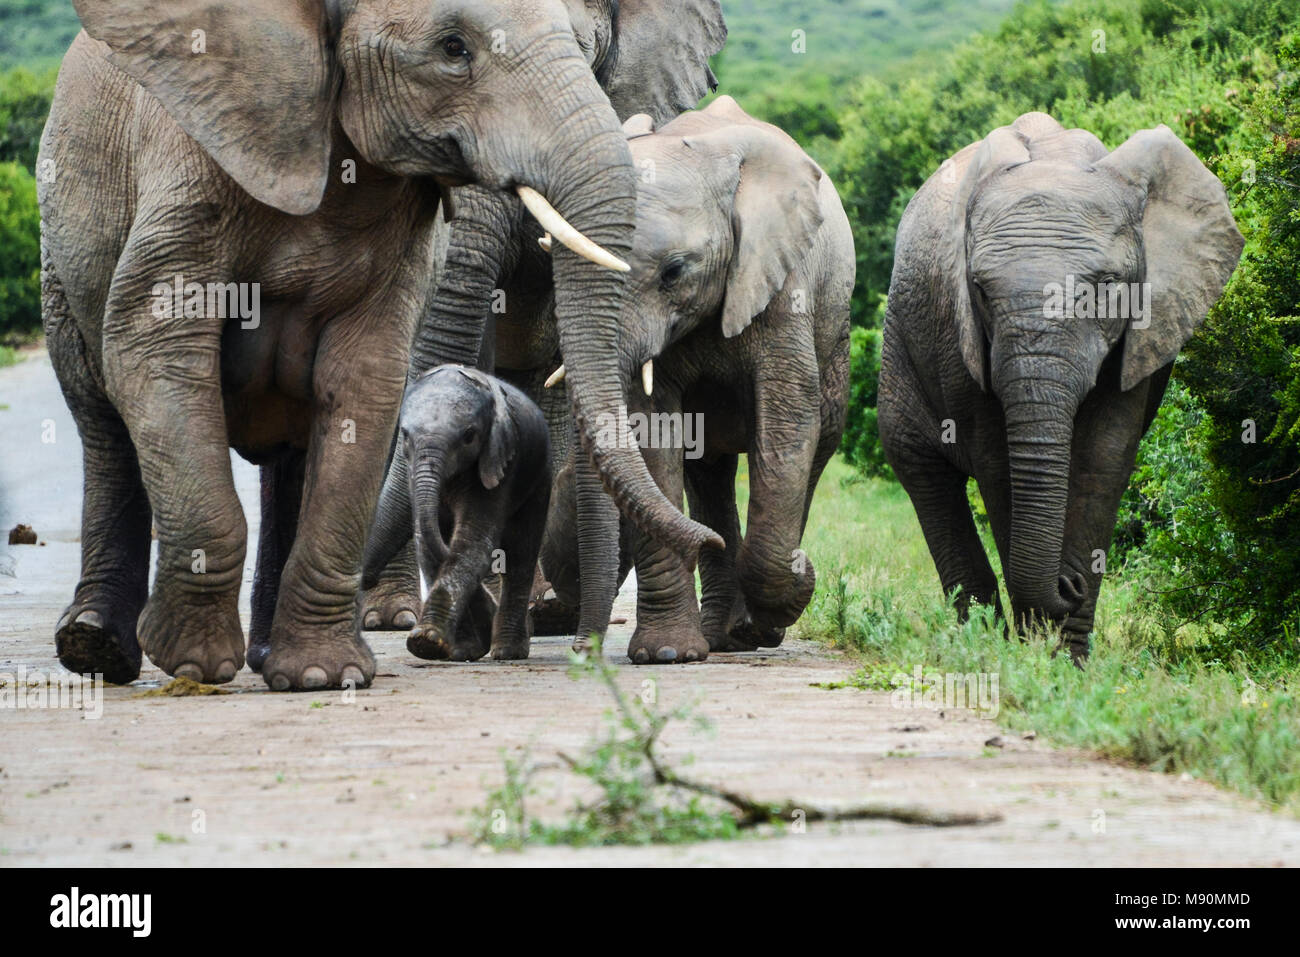 A herd of African bush elephants (Loxodonta africana) with a baby in Addo Elephant Park, South Africa - Stock Image